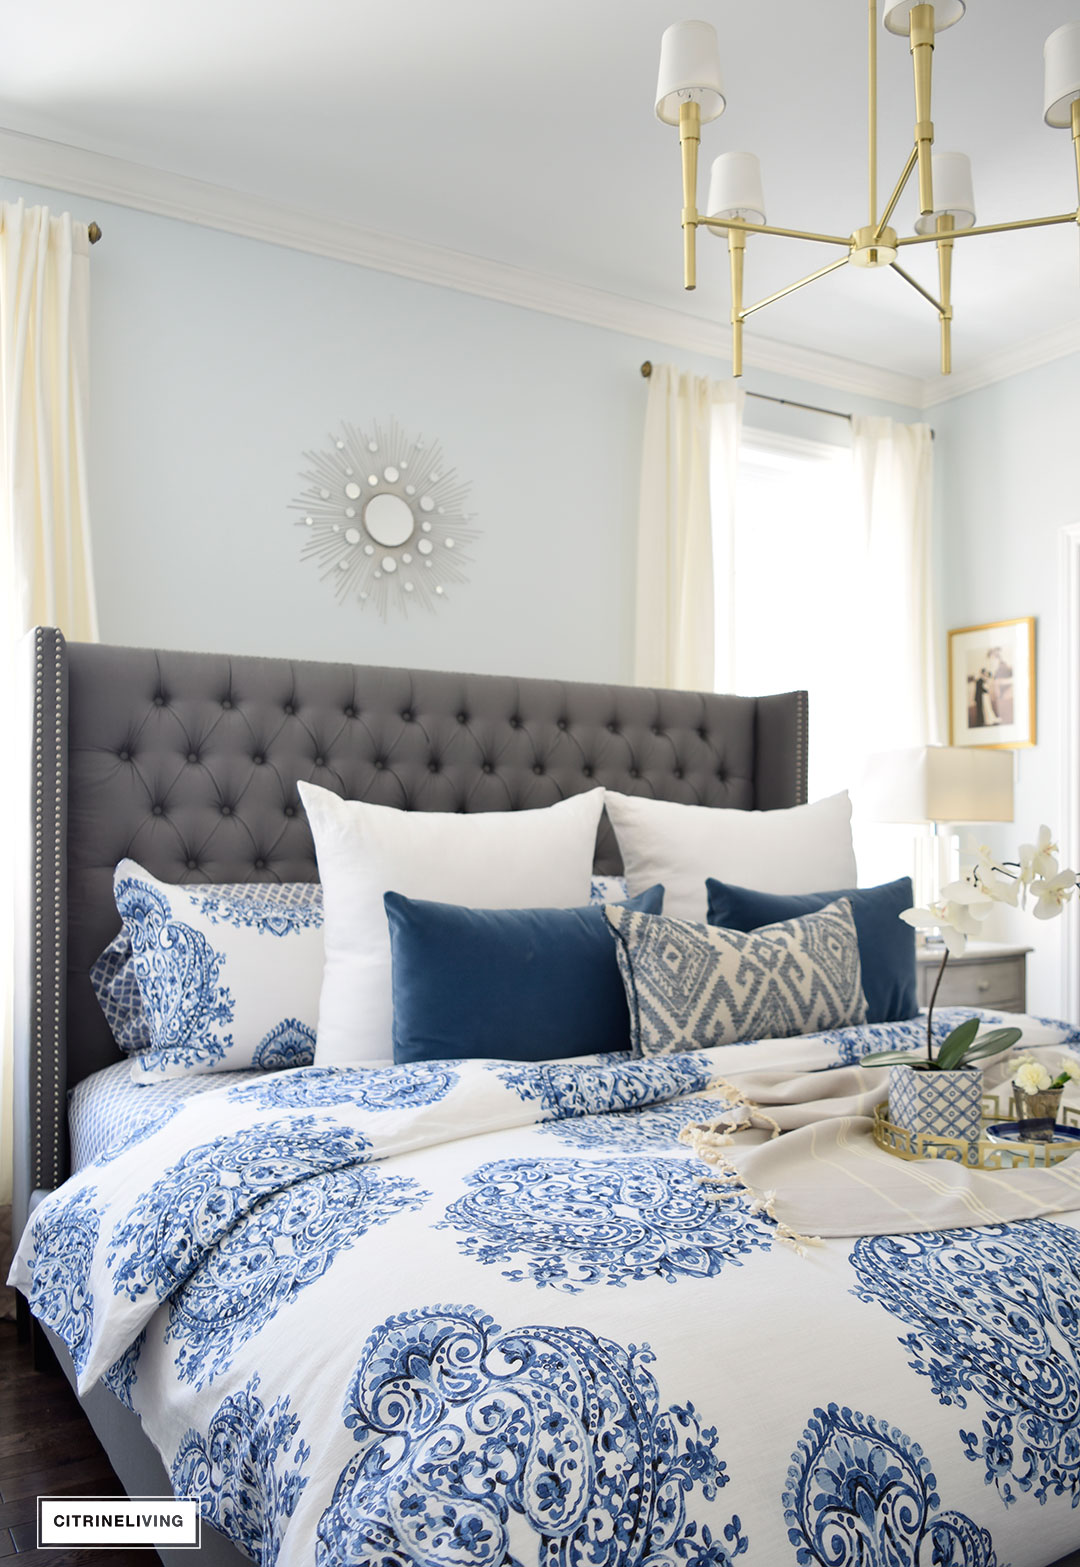 Blue and white bedding - Gorgeous Blue And White Bedroom Featuring Blue And White Bedding Paired With Global Inspired Textiles